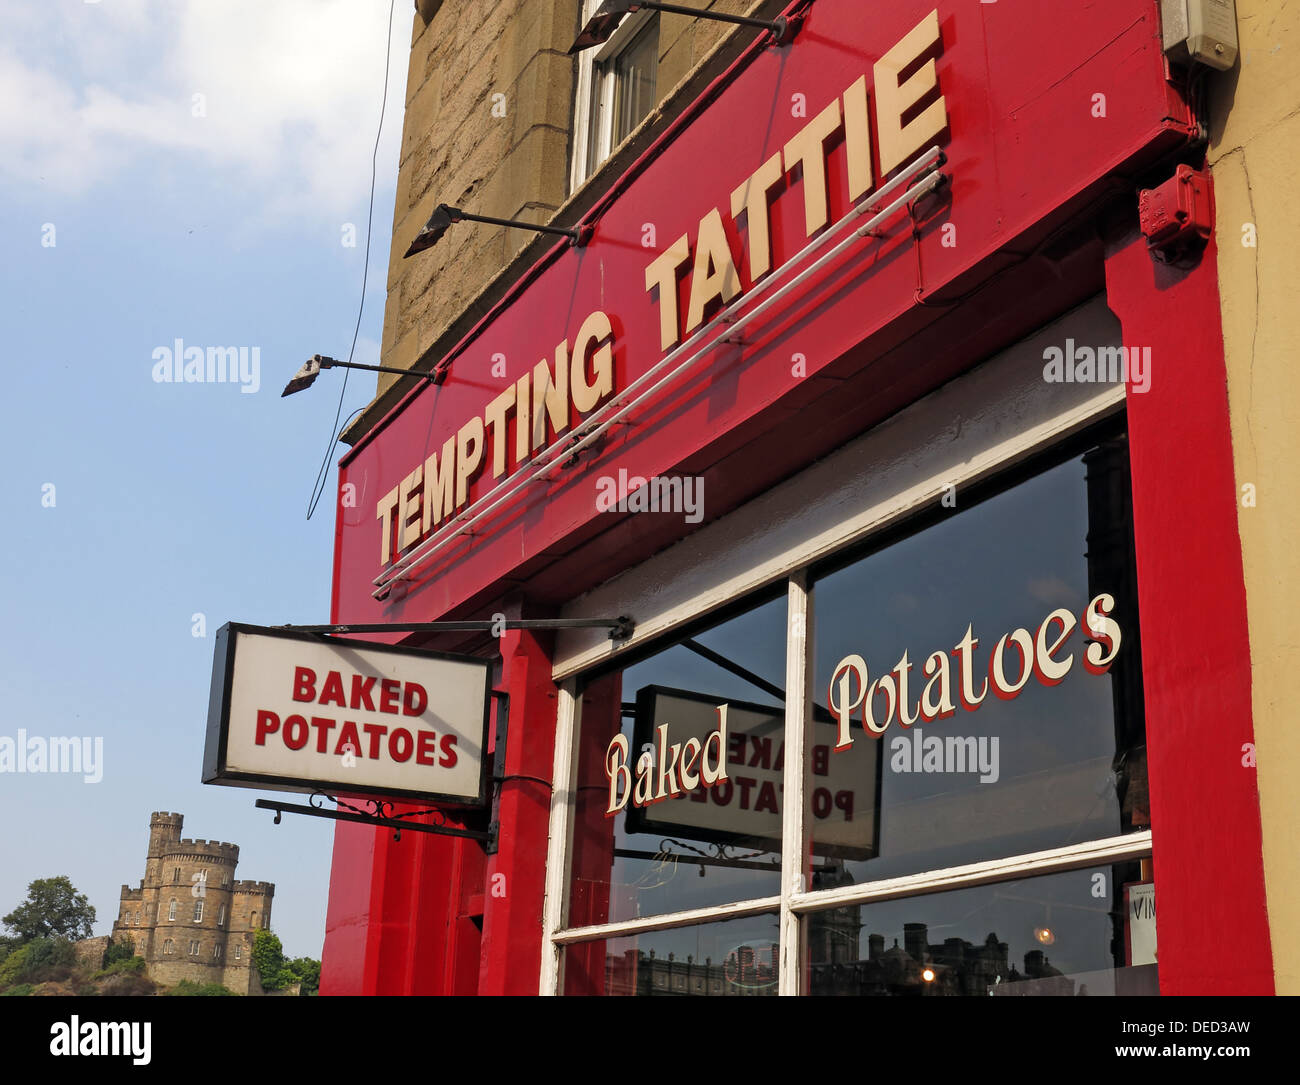 The Tempting Tattie Baked Spud shop Edinburgh Scotland UK - Stock Image